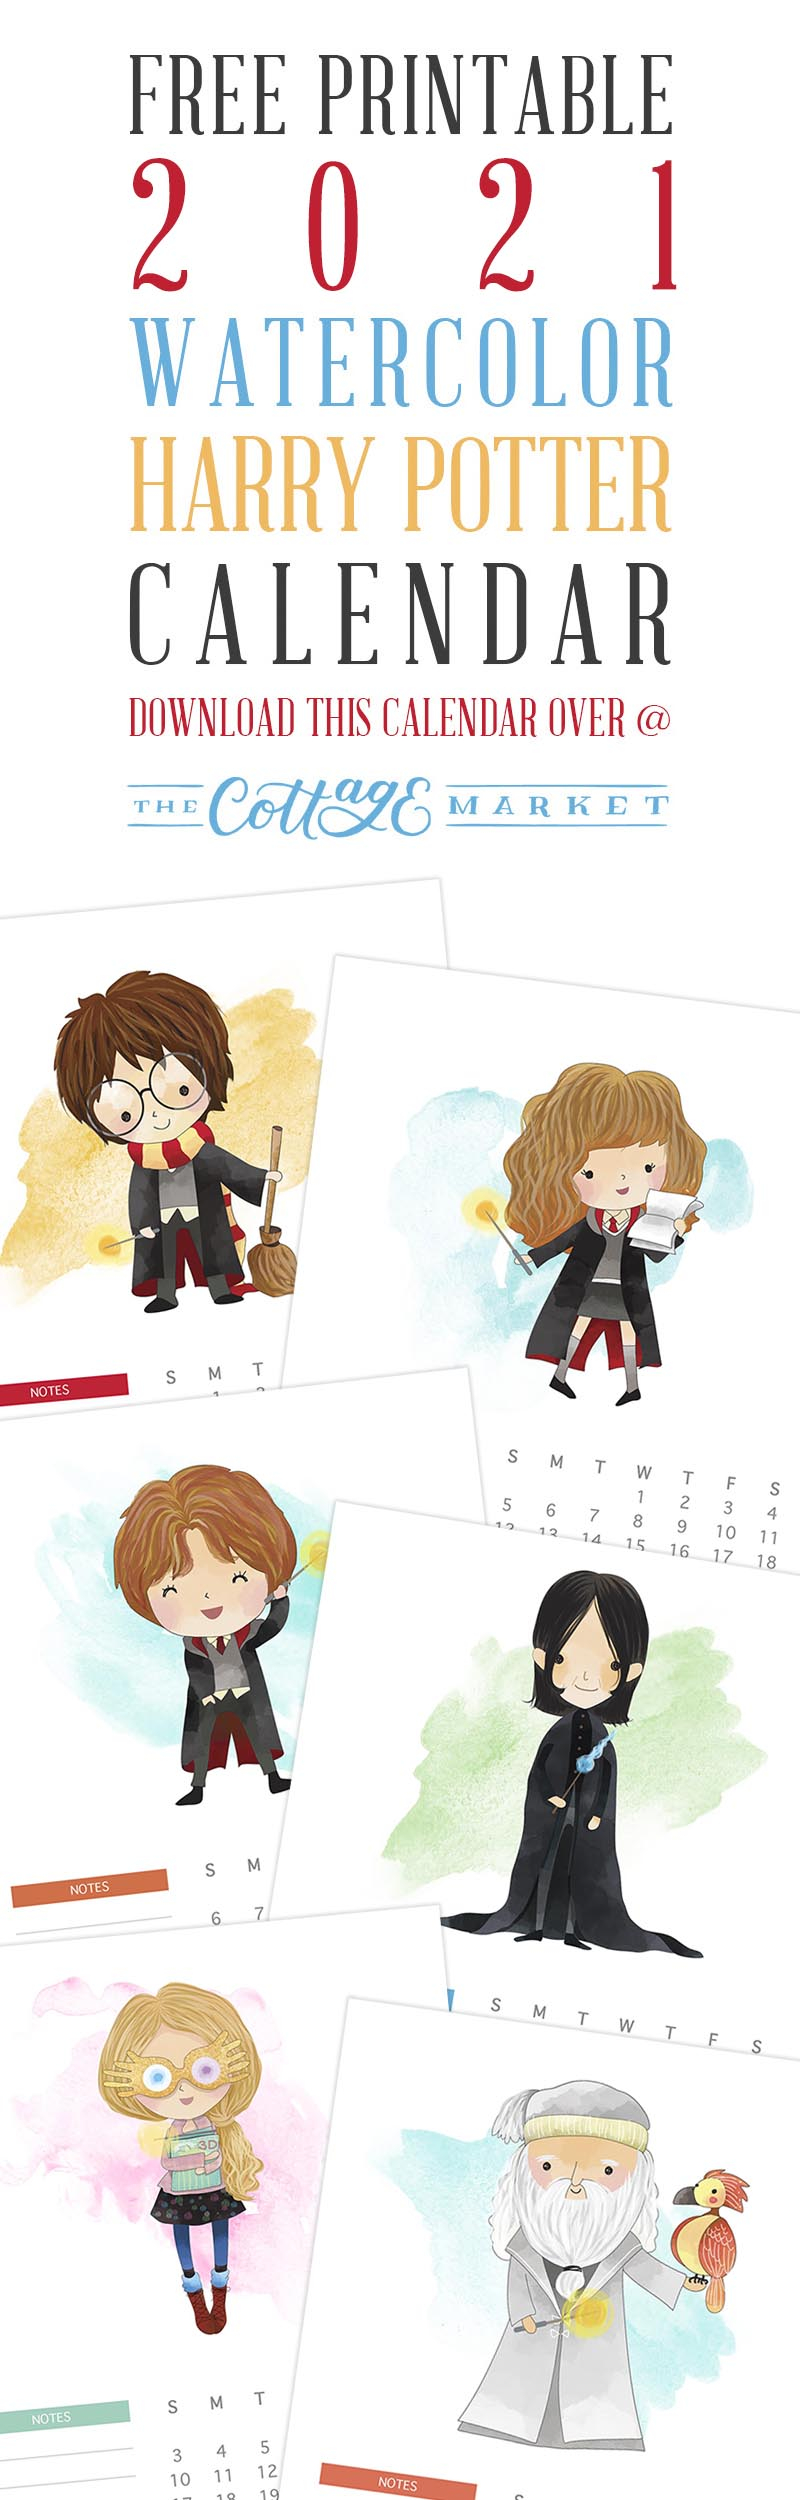 Free Printable 2021 Watercolor Harry Potter Calendar - The